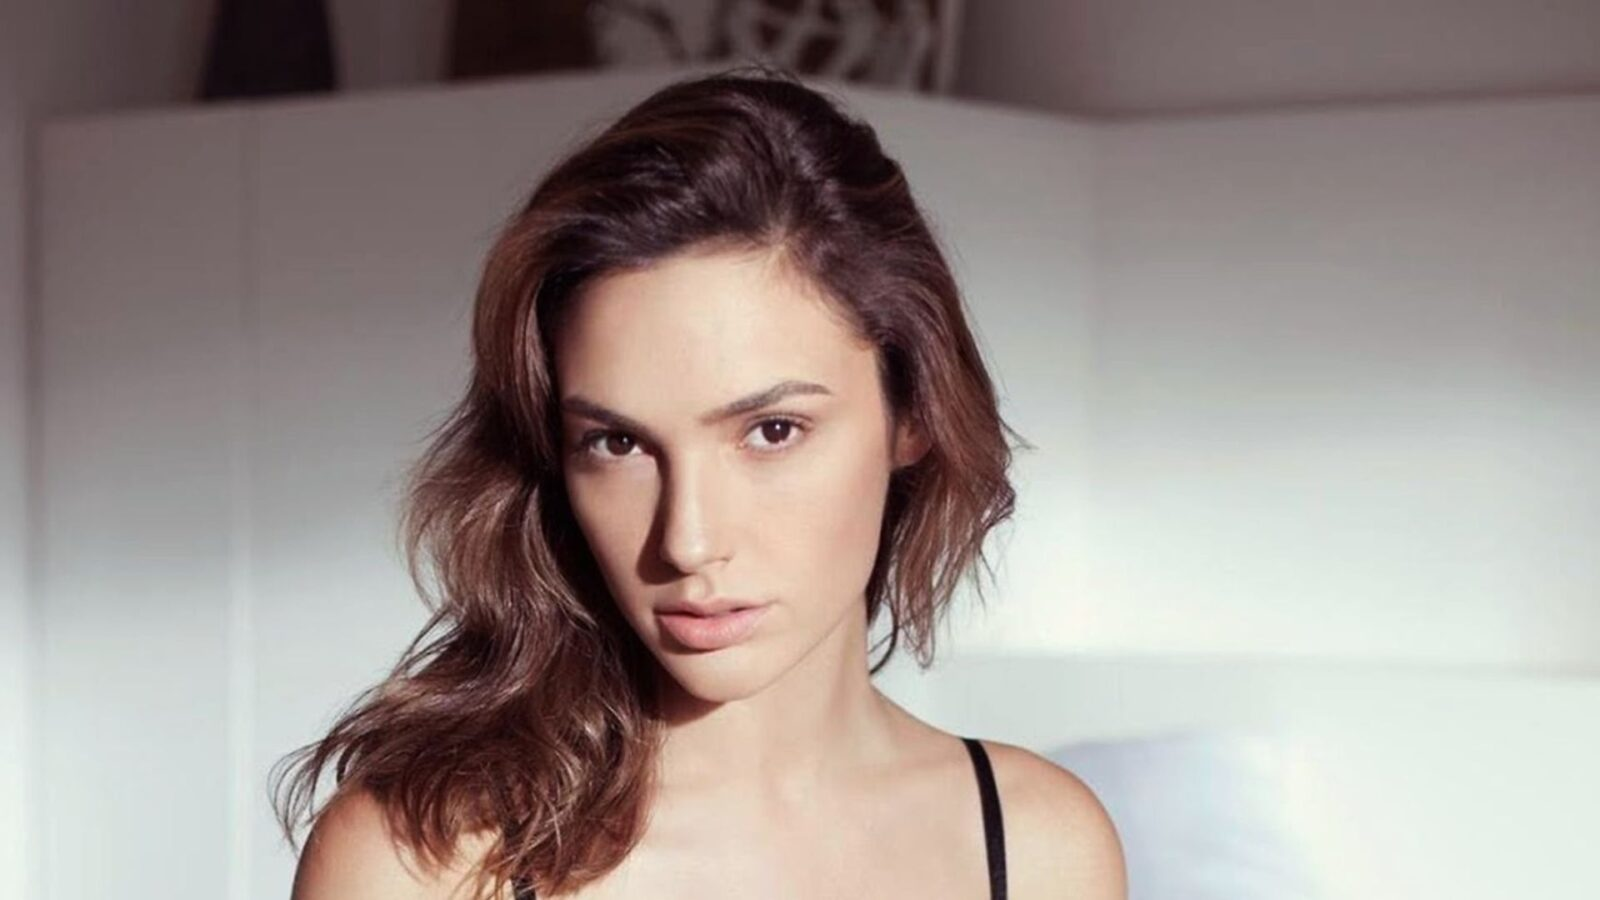 gal gadot nue photo